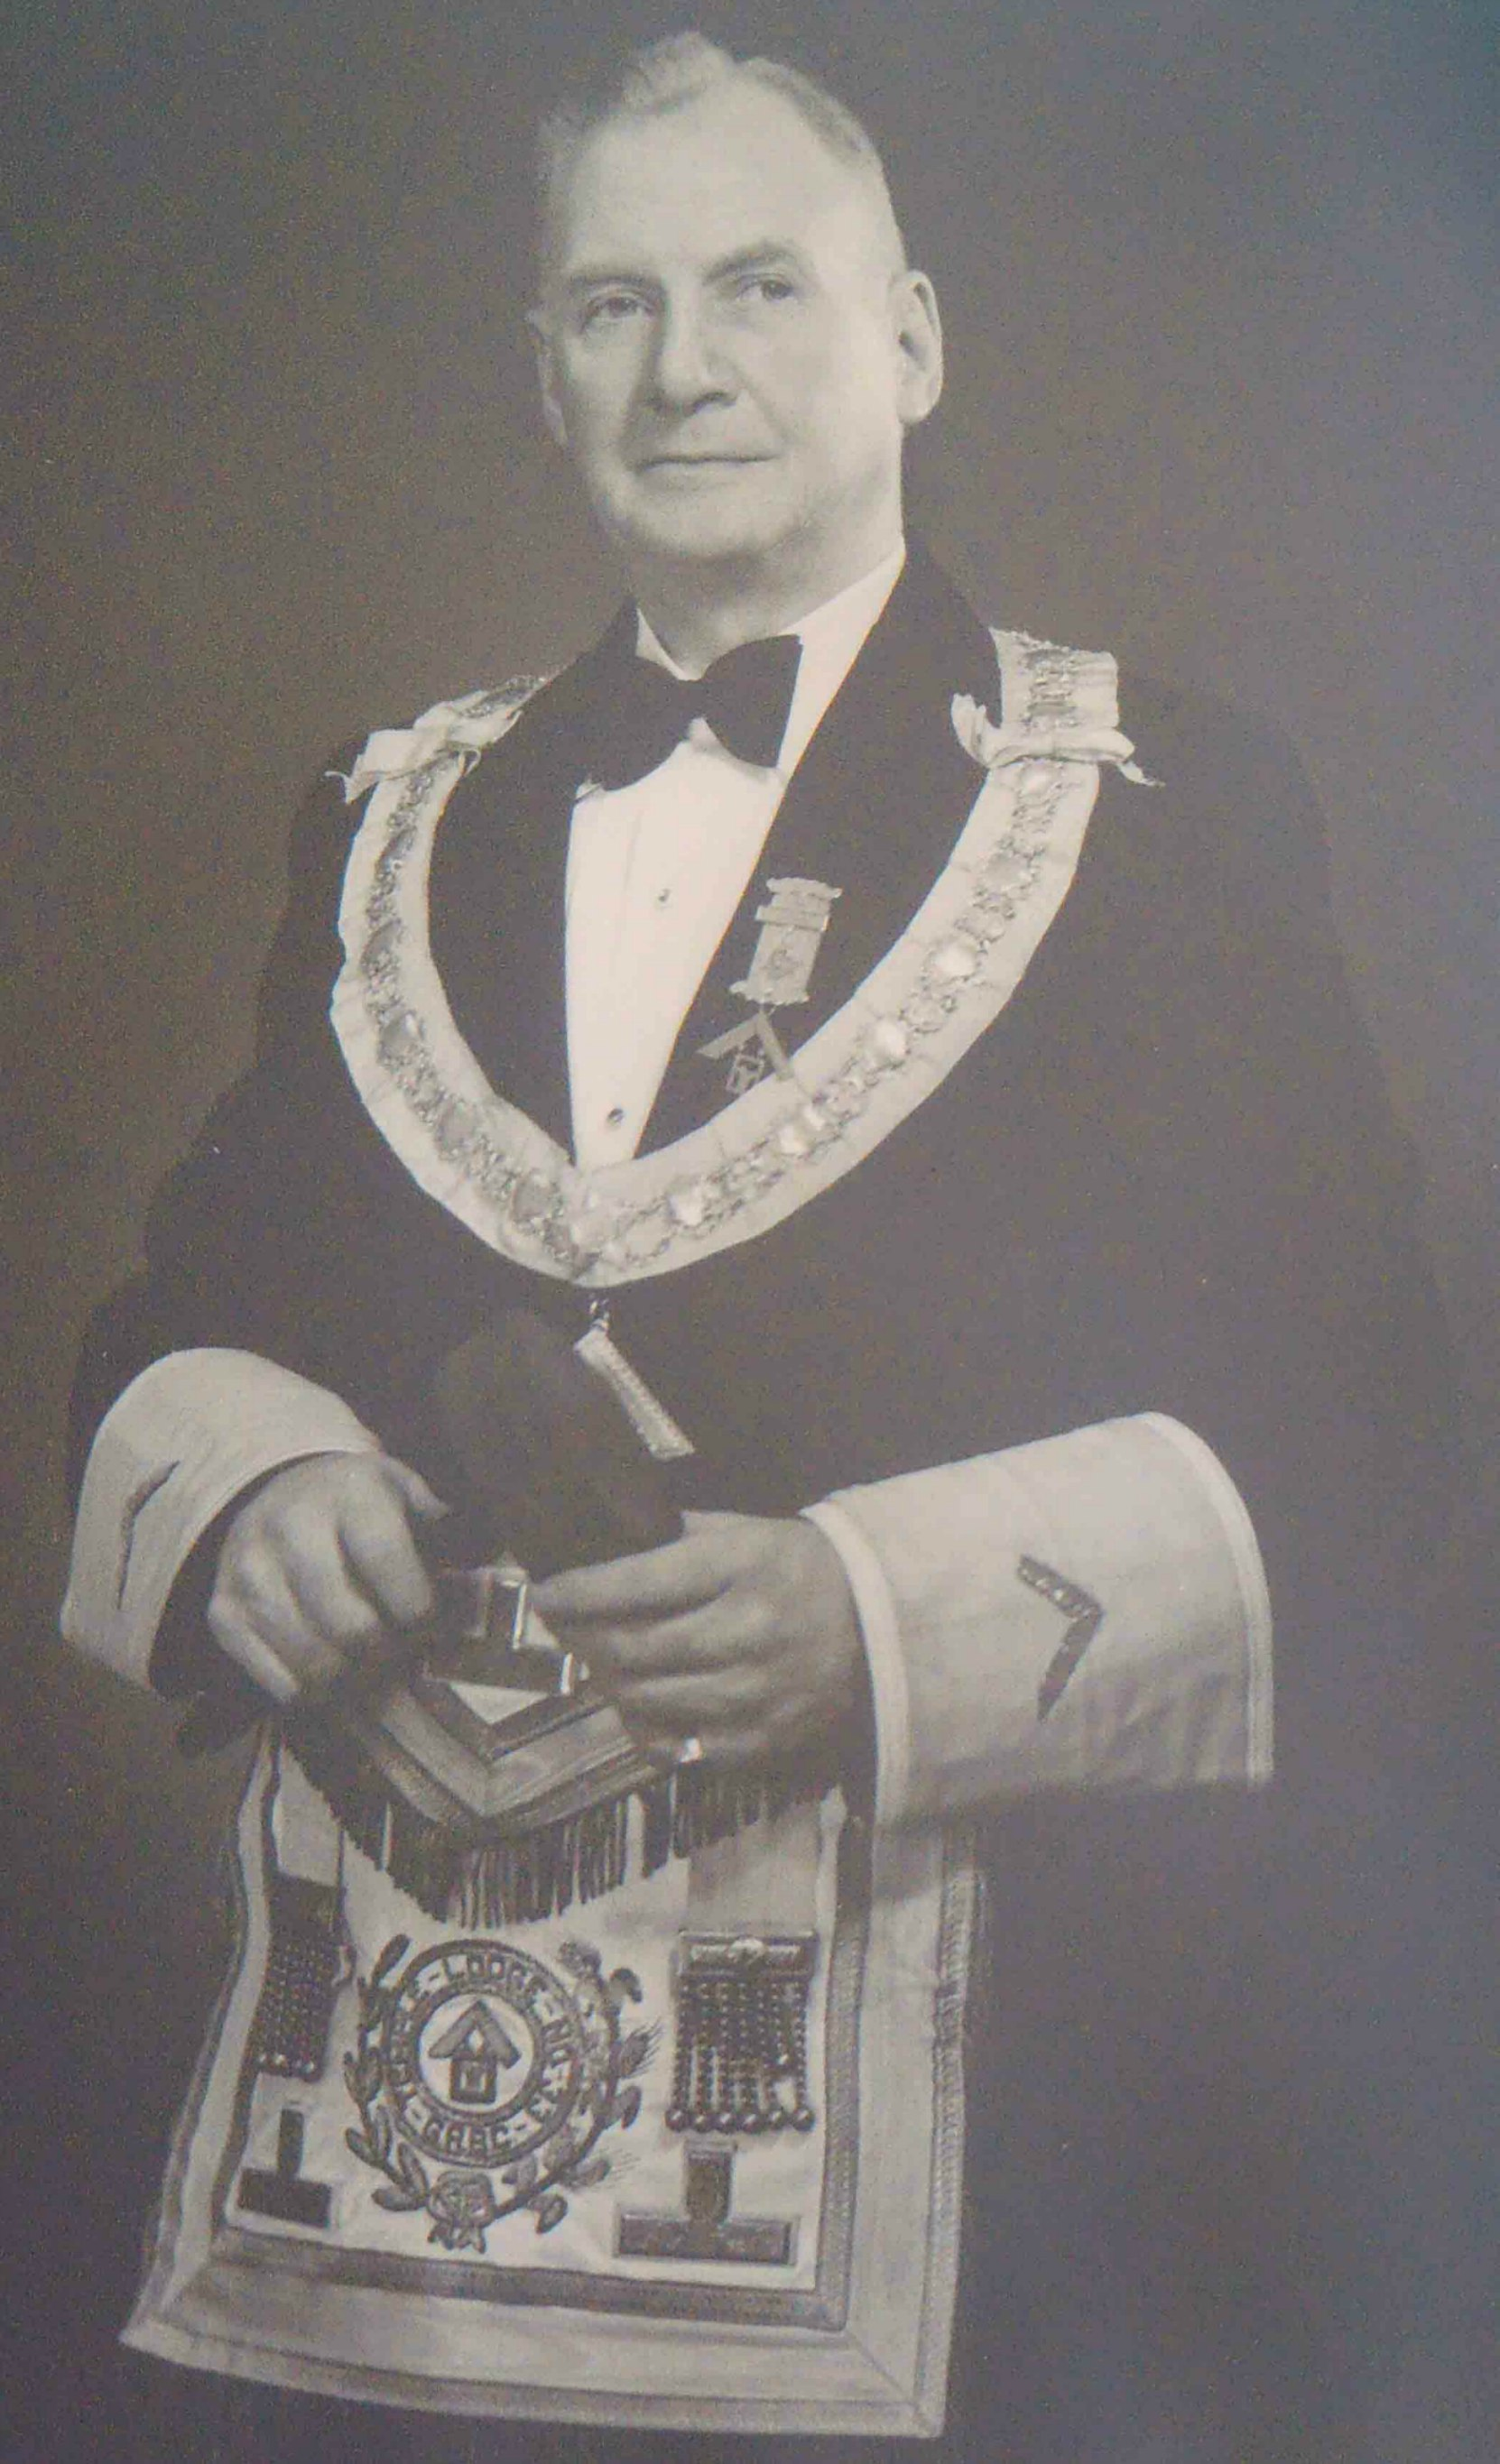 Robert Keddie Cairns (died 1973, aged 83), served as Worshipful Master of Temple Lodge, No.33 in 1935 (photo copyright Temple Lodge, No.33)